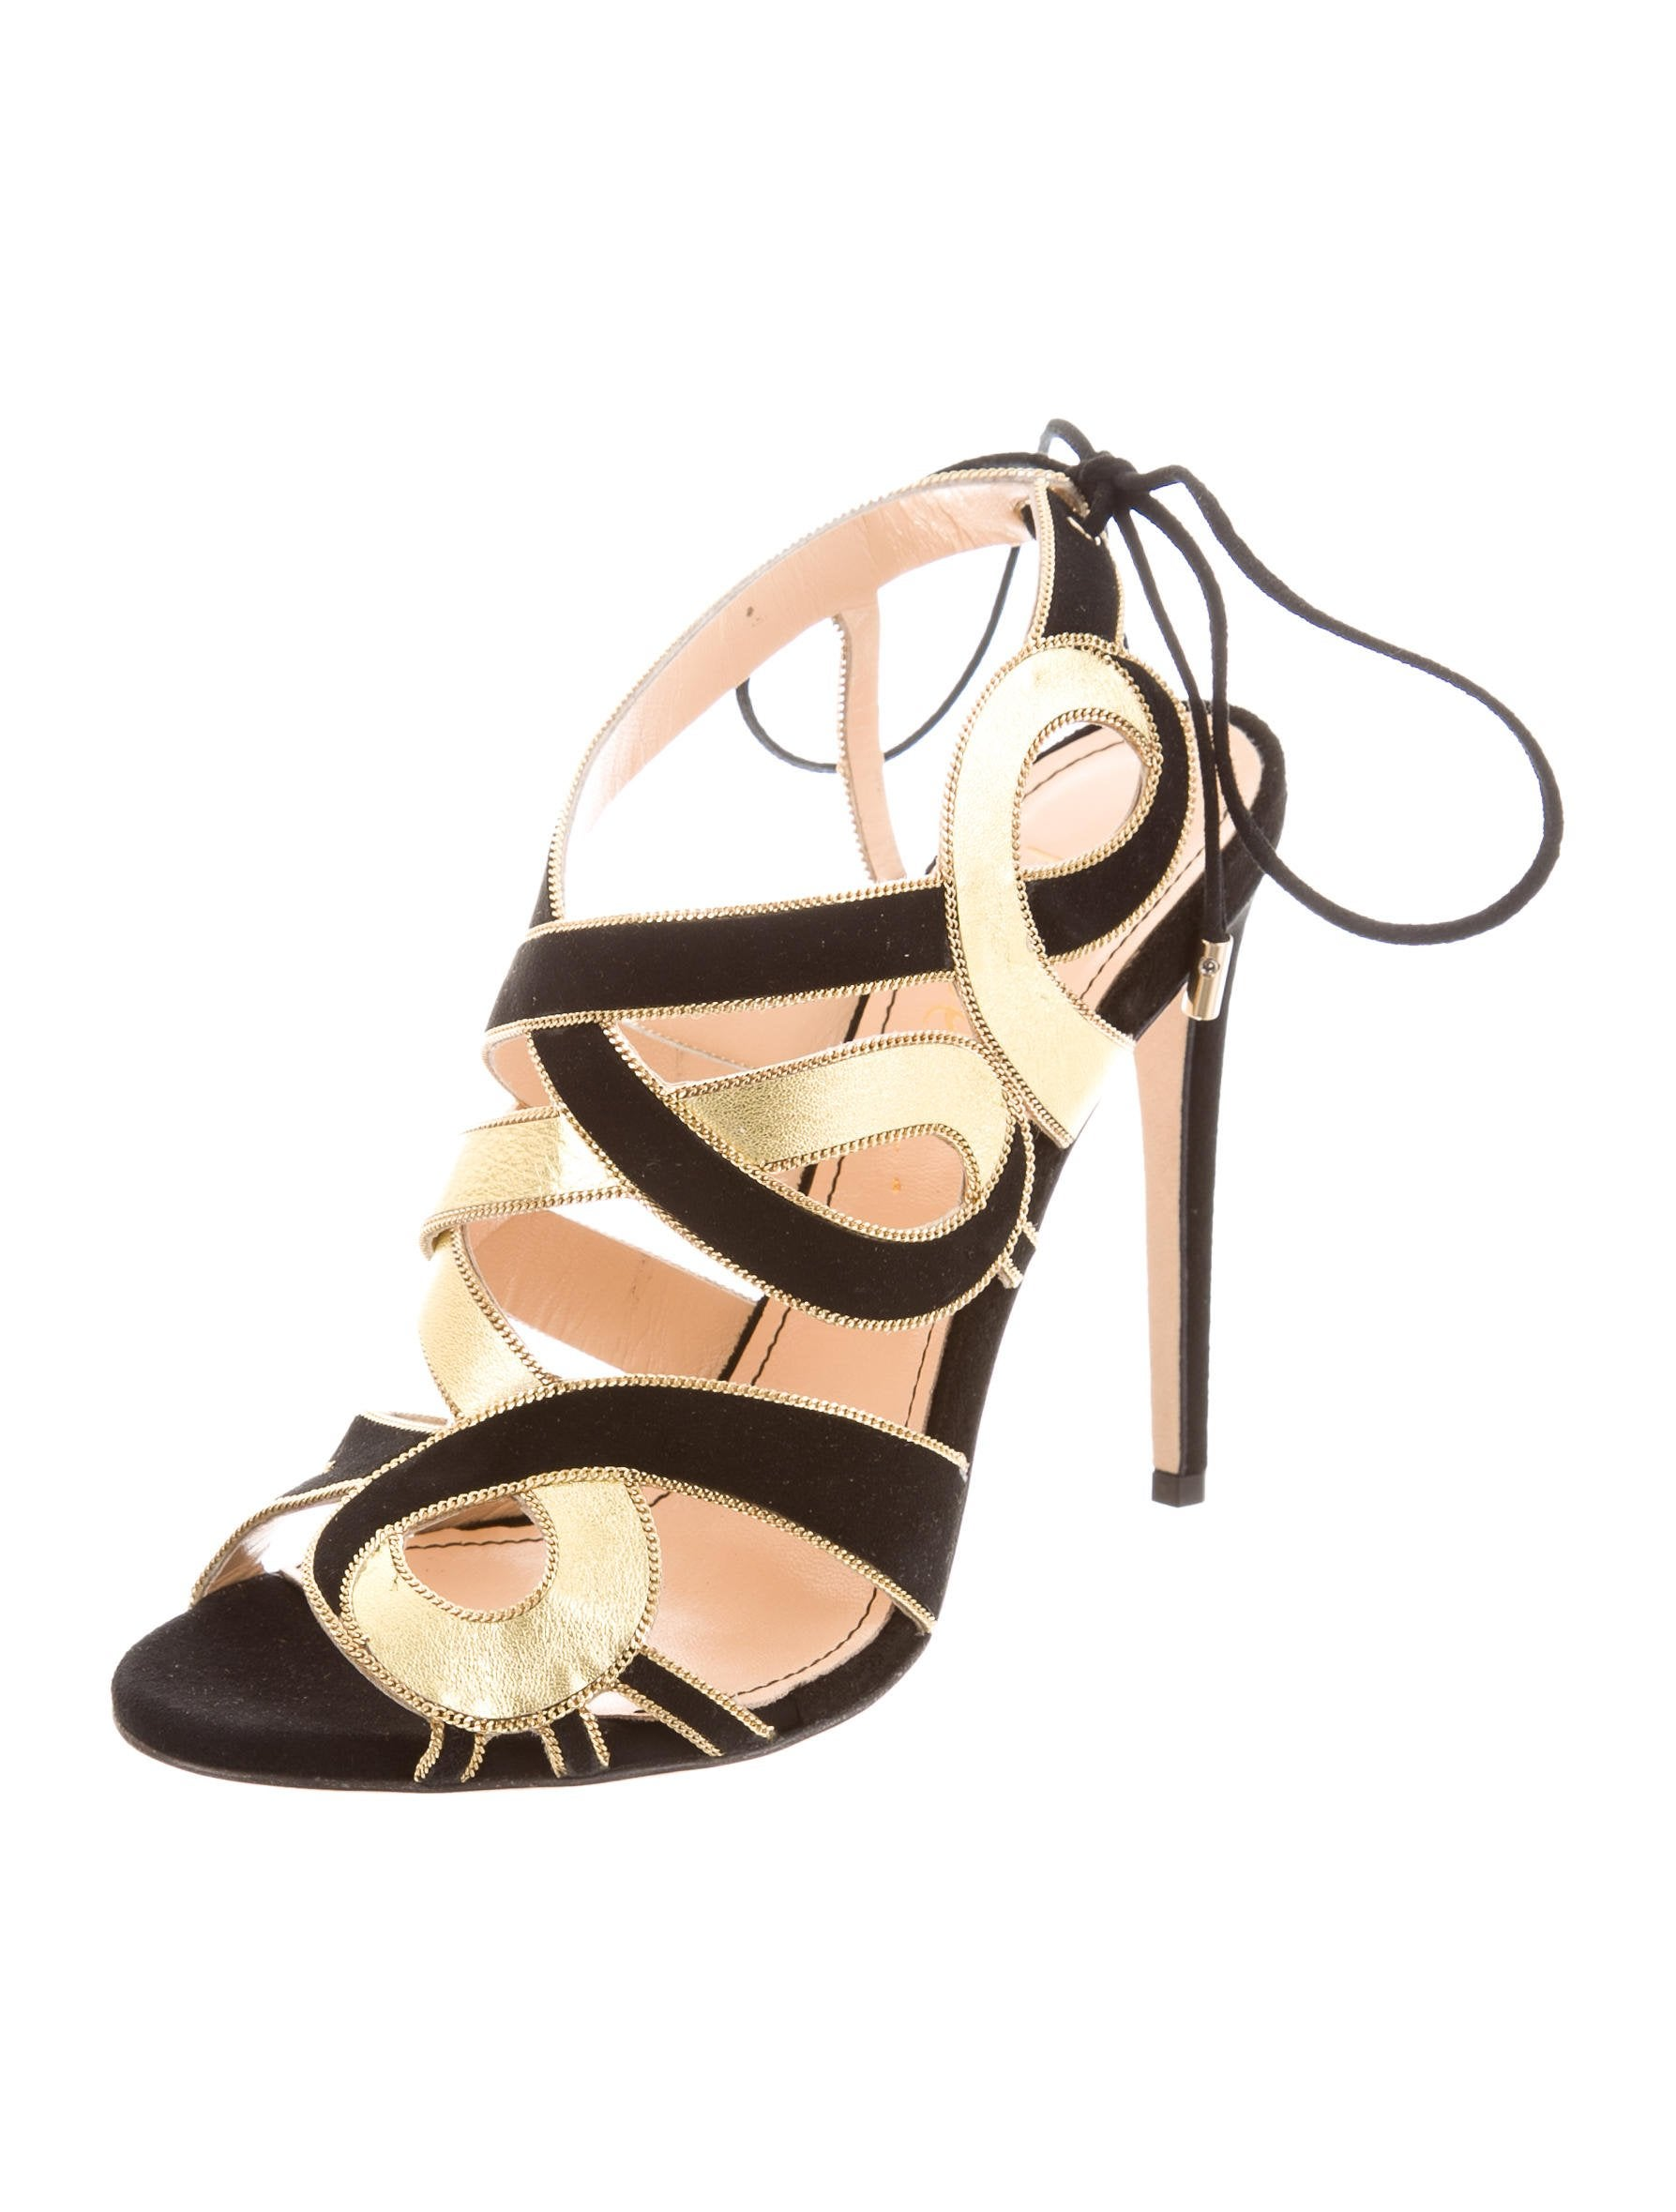 Jerome C. Rousseau Suede Cinoche Sandals w/ Tags cost cheap price quality outlet store sale pre order 4FO7f4J